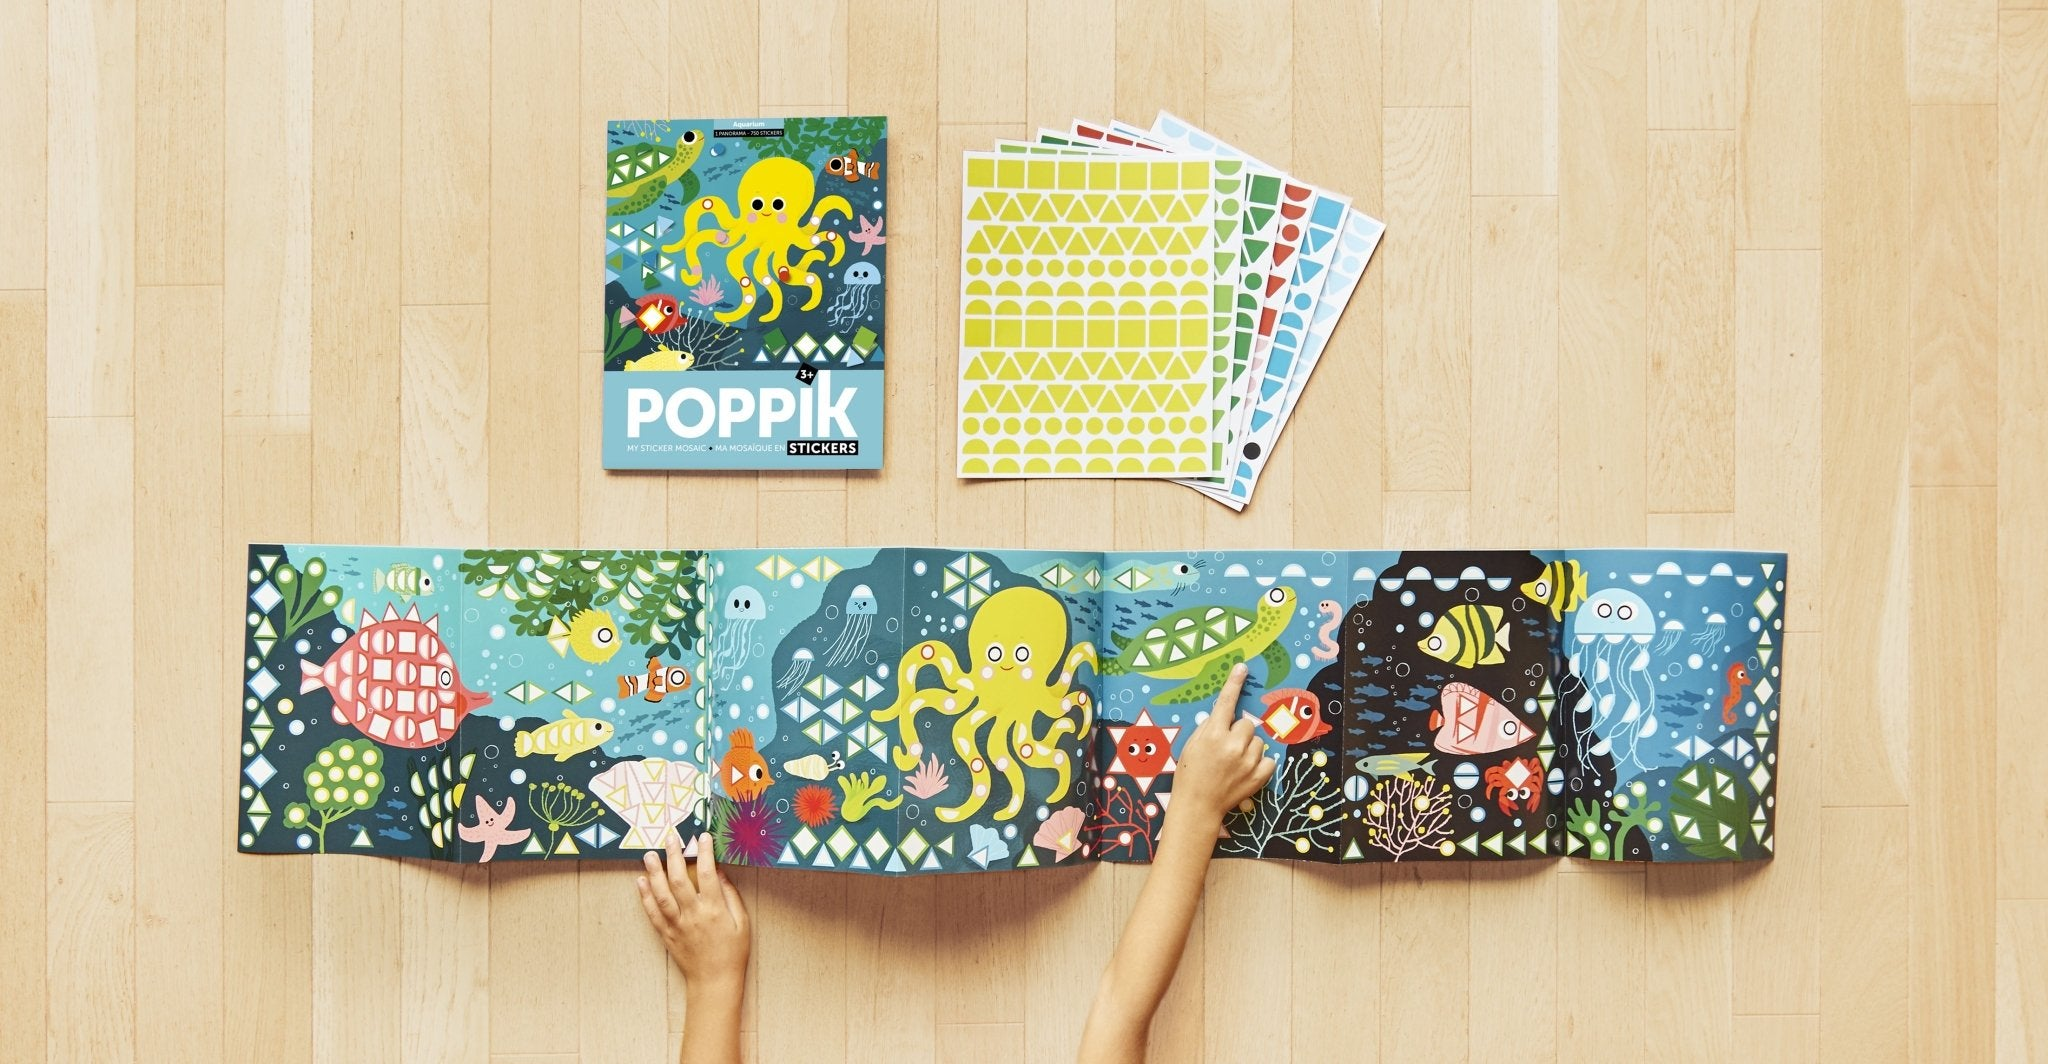 Poppik sticker panarama - Aquarium - The Stationery Cupboard